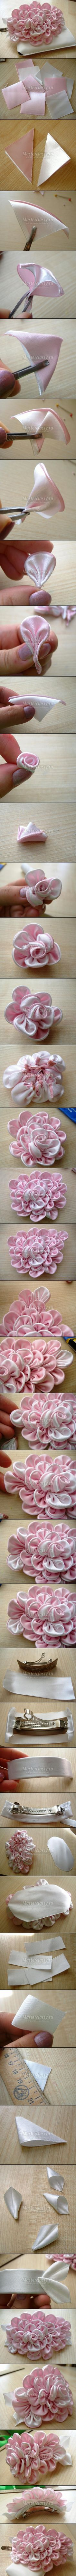 fabric / ribbon flower diy Grouped image by http://pinthemall.net